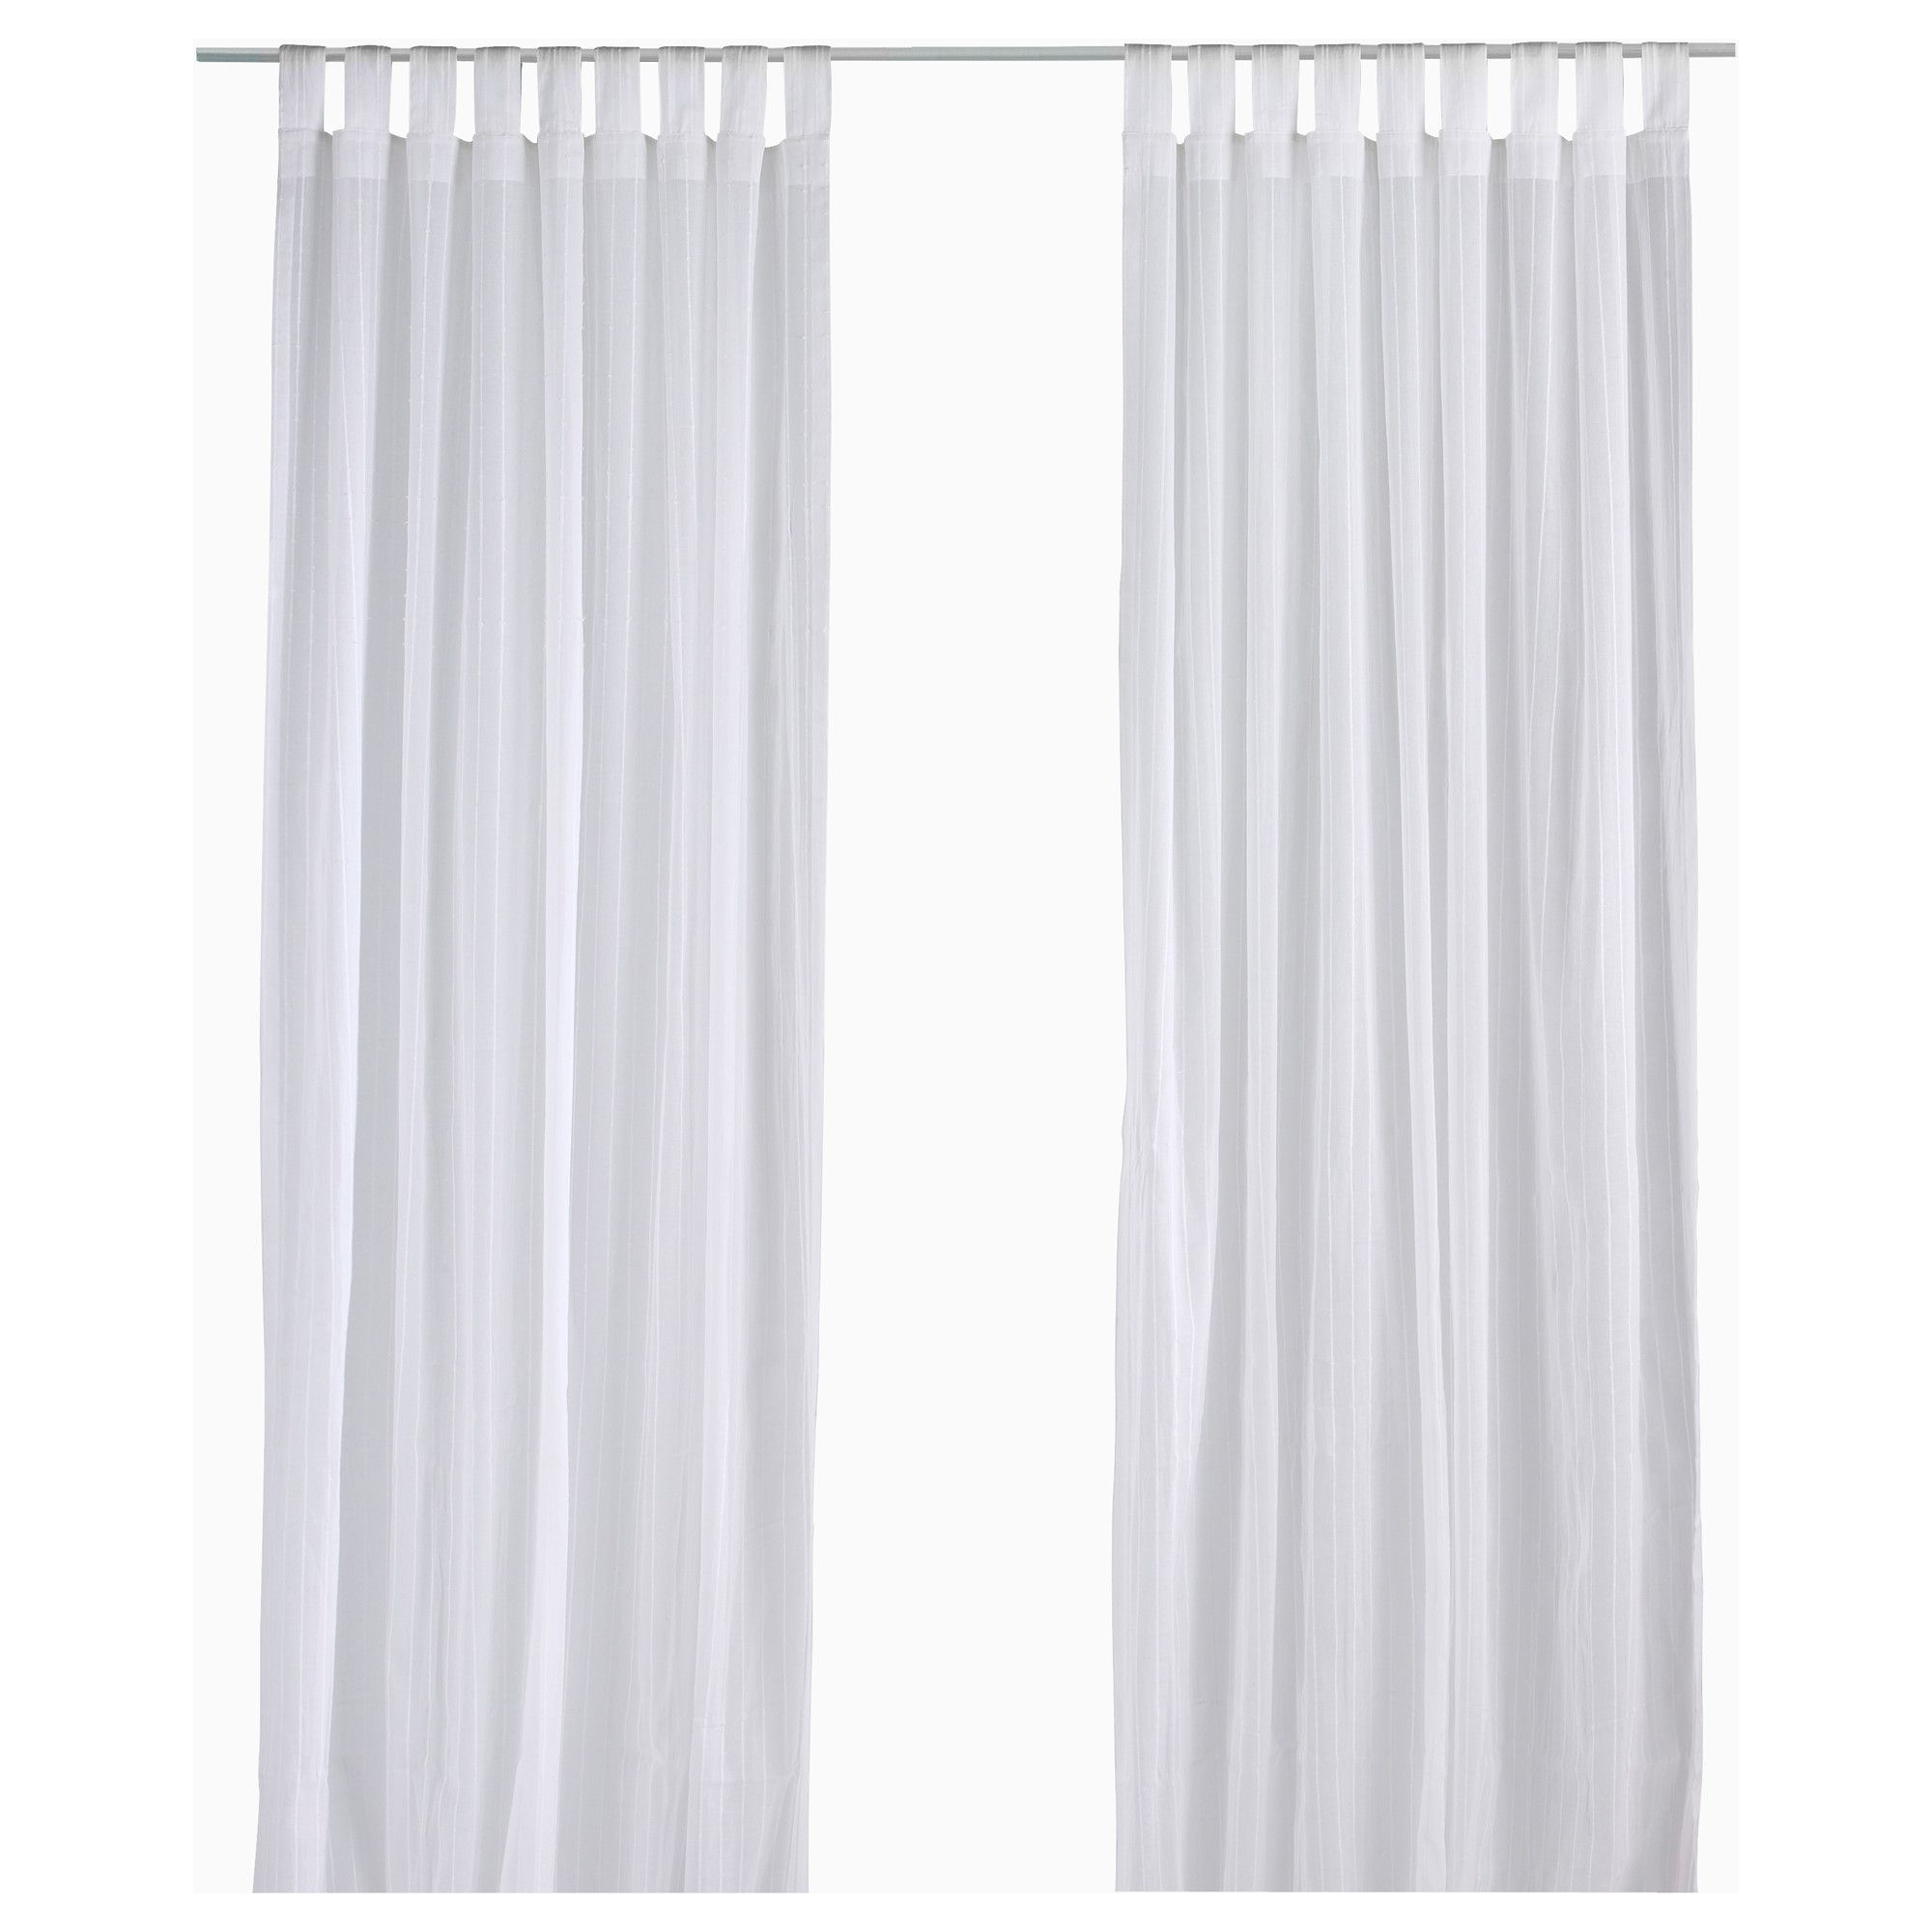 Matilda Sheer Curtains 1 Pair White The Old North